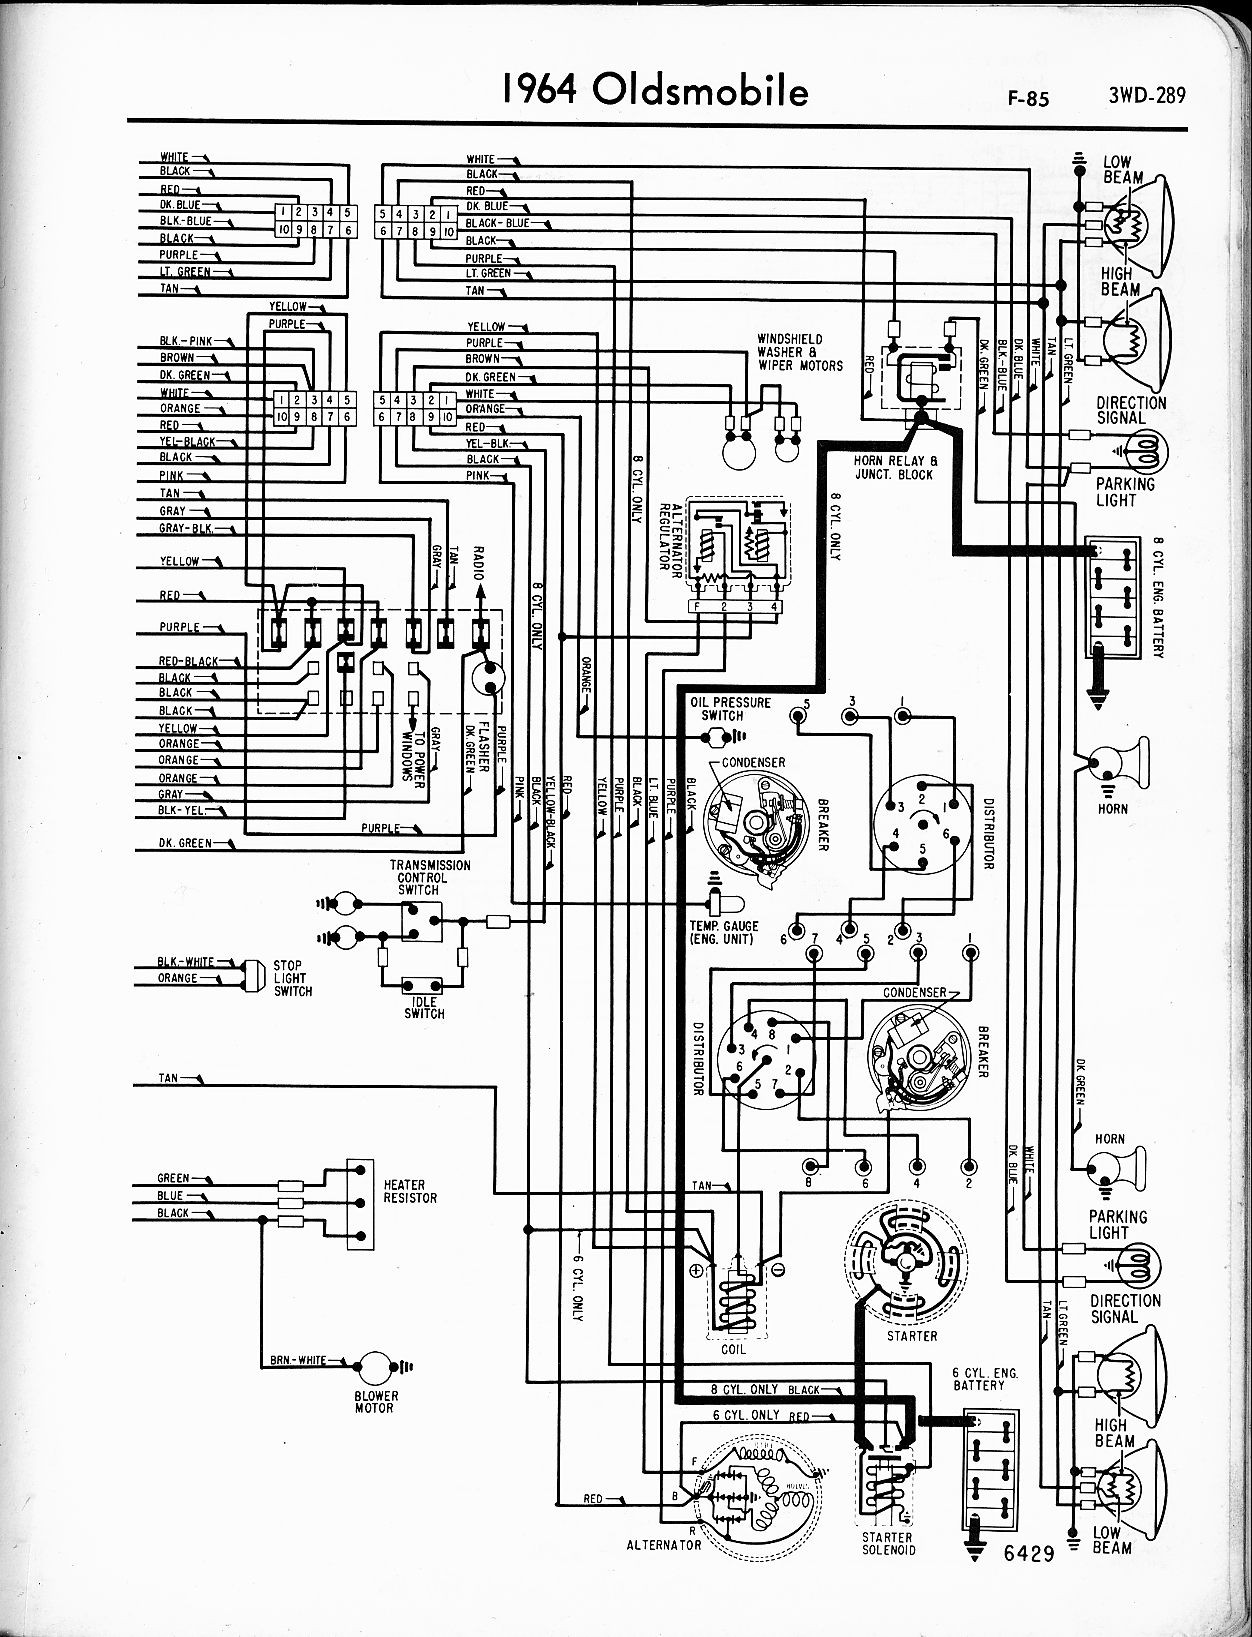 1957 Oldsmobile Engine Wiring Diagram Just Another 2001 Intrigue Library Rh 25 Dreamnode Online Cutlass